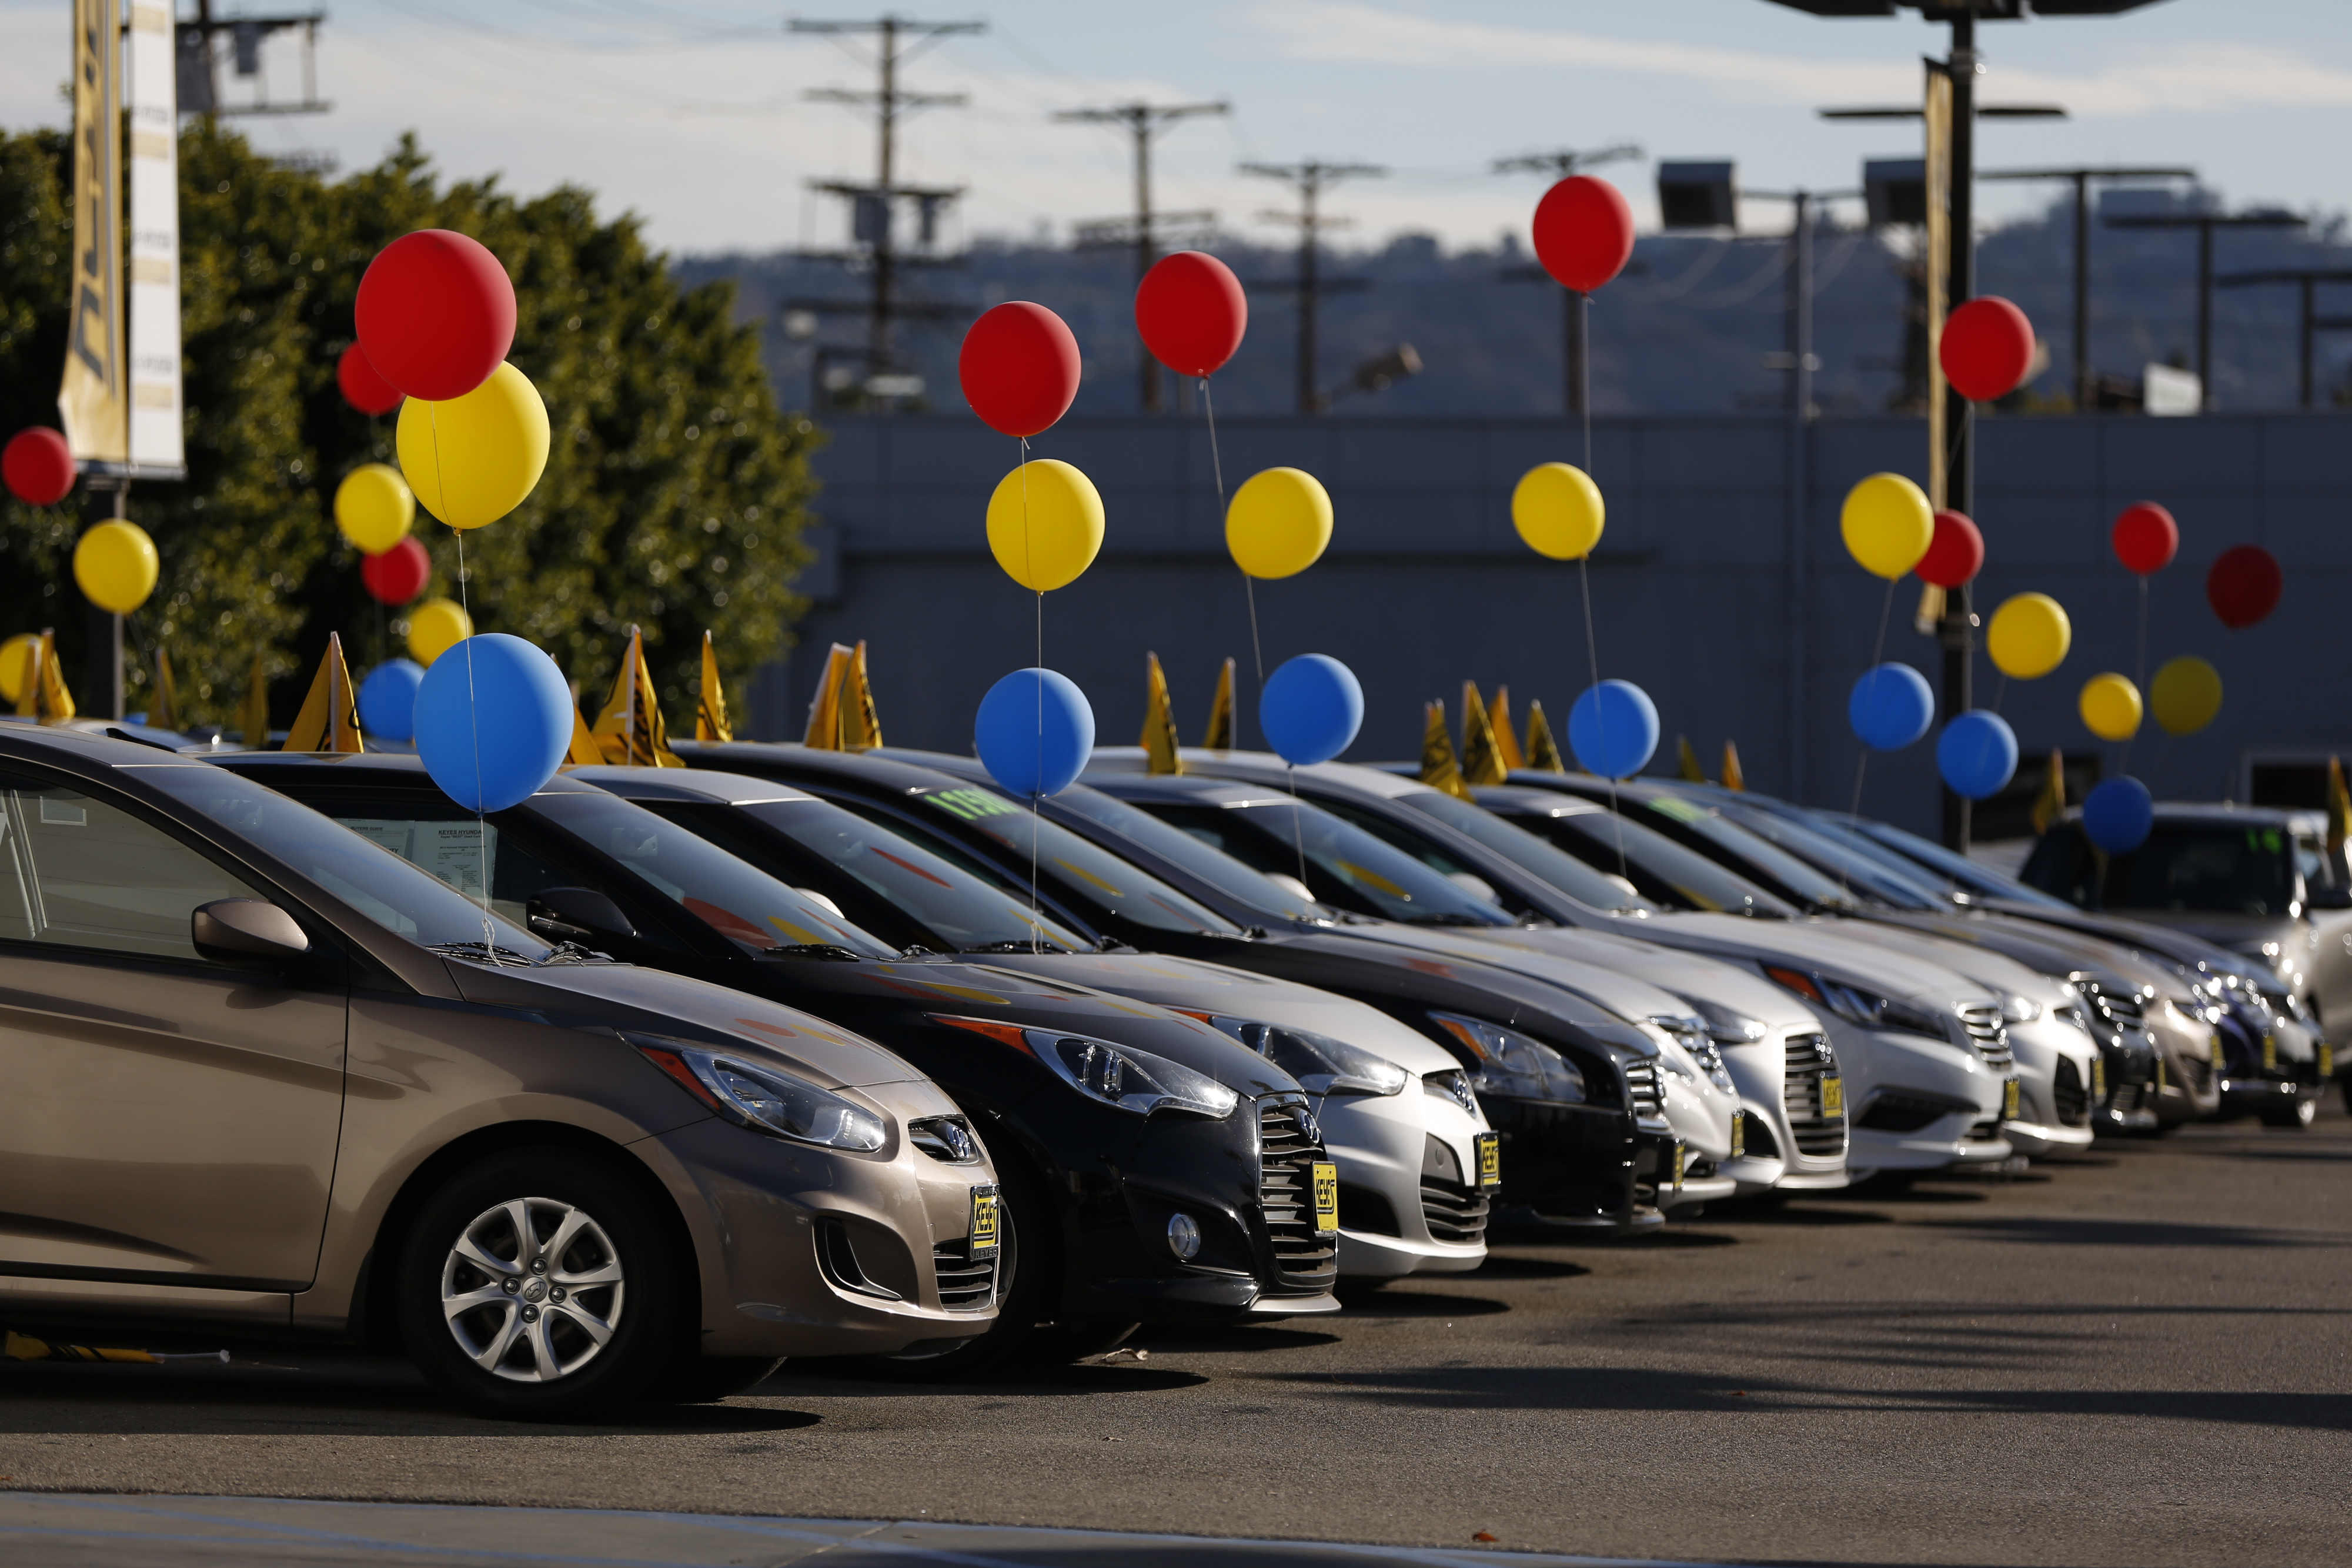 hyundai motor co vehicles sit on display for sale